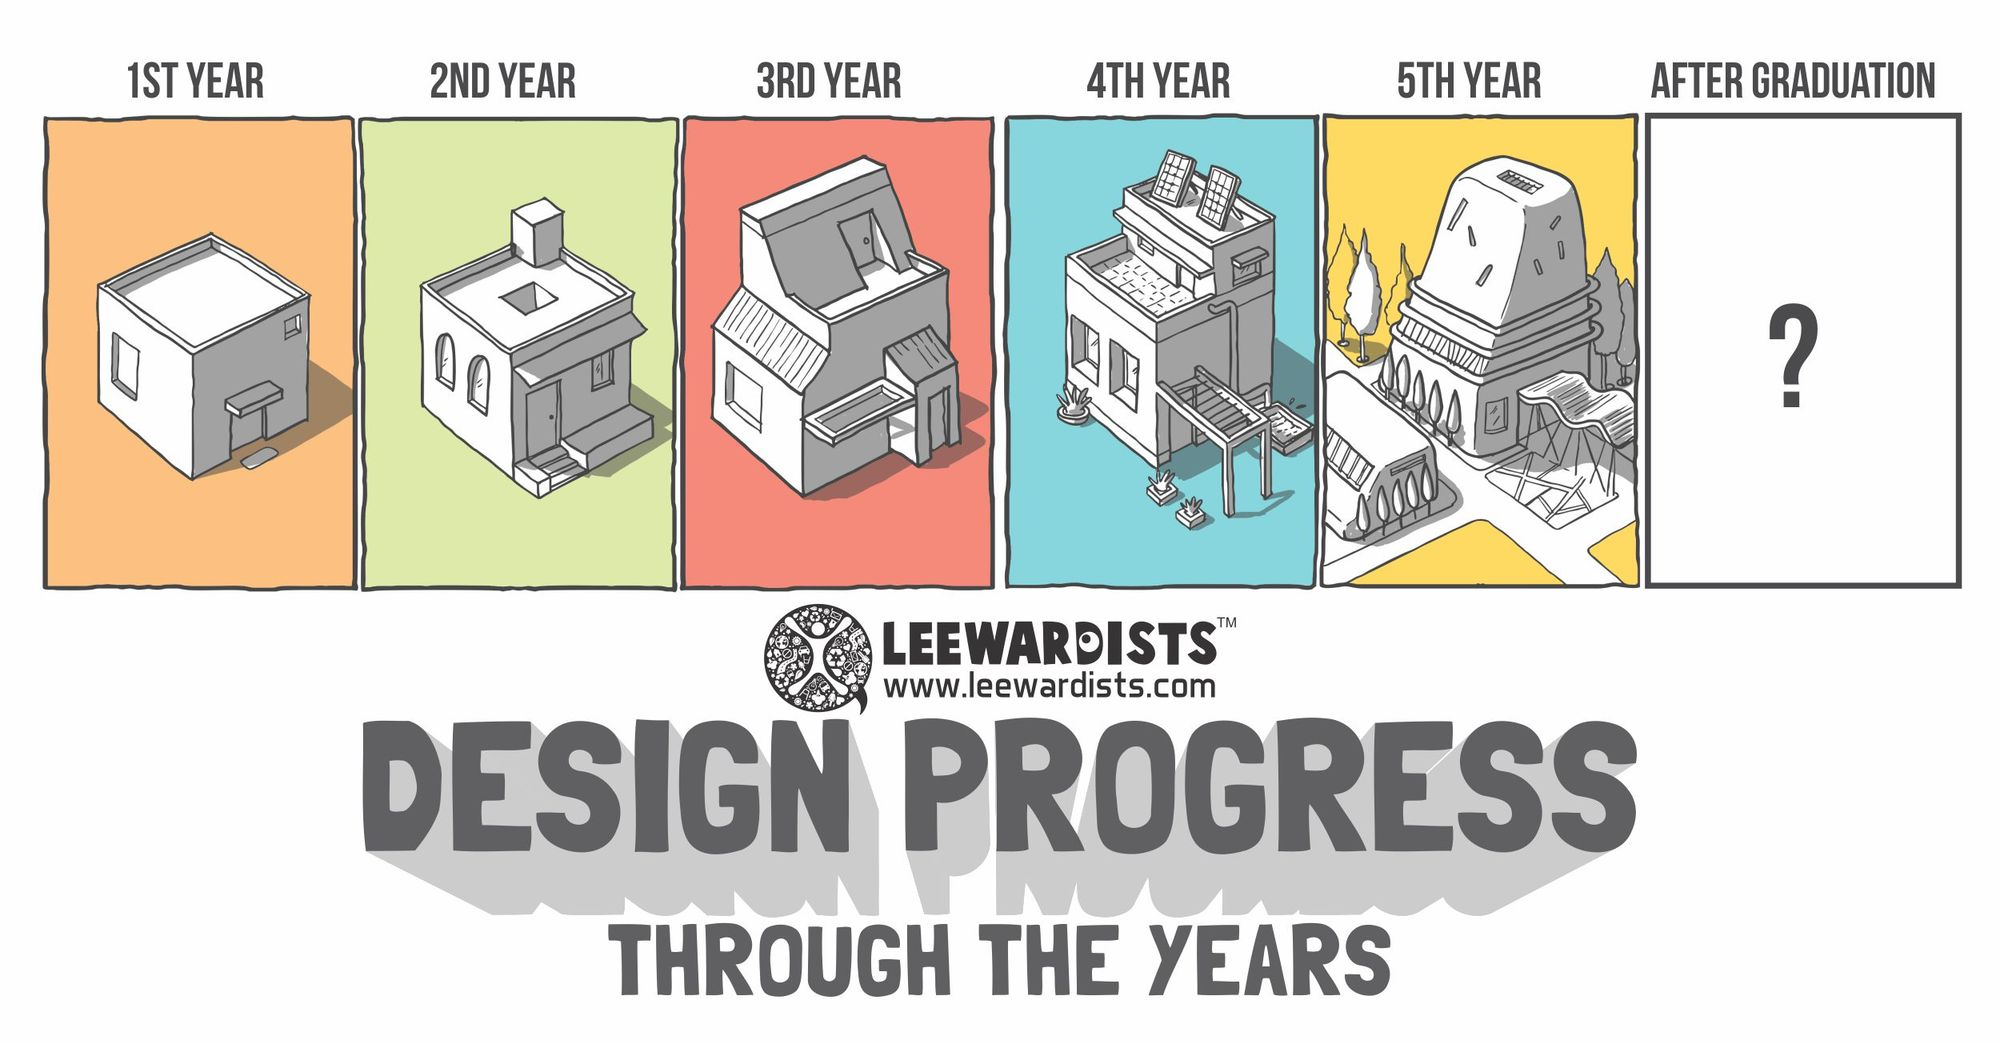 The Design Progress Through the Years